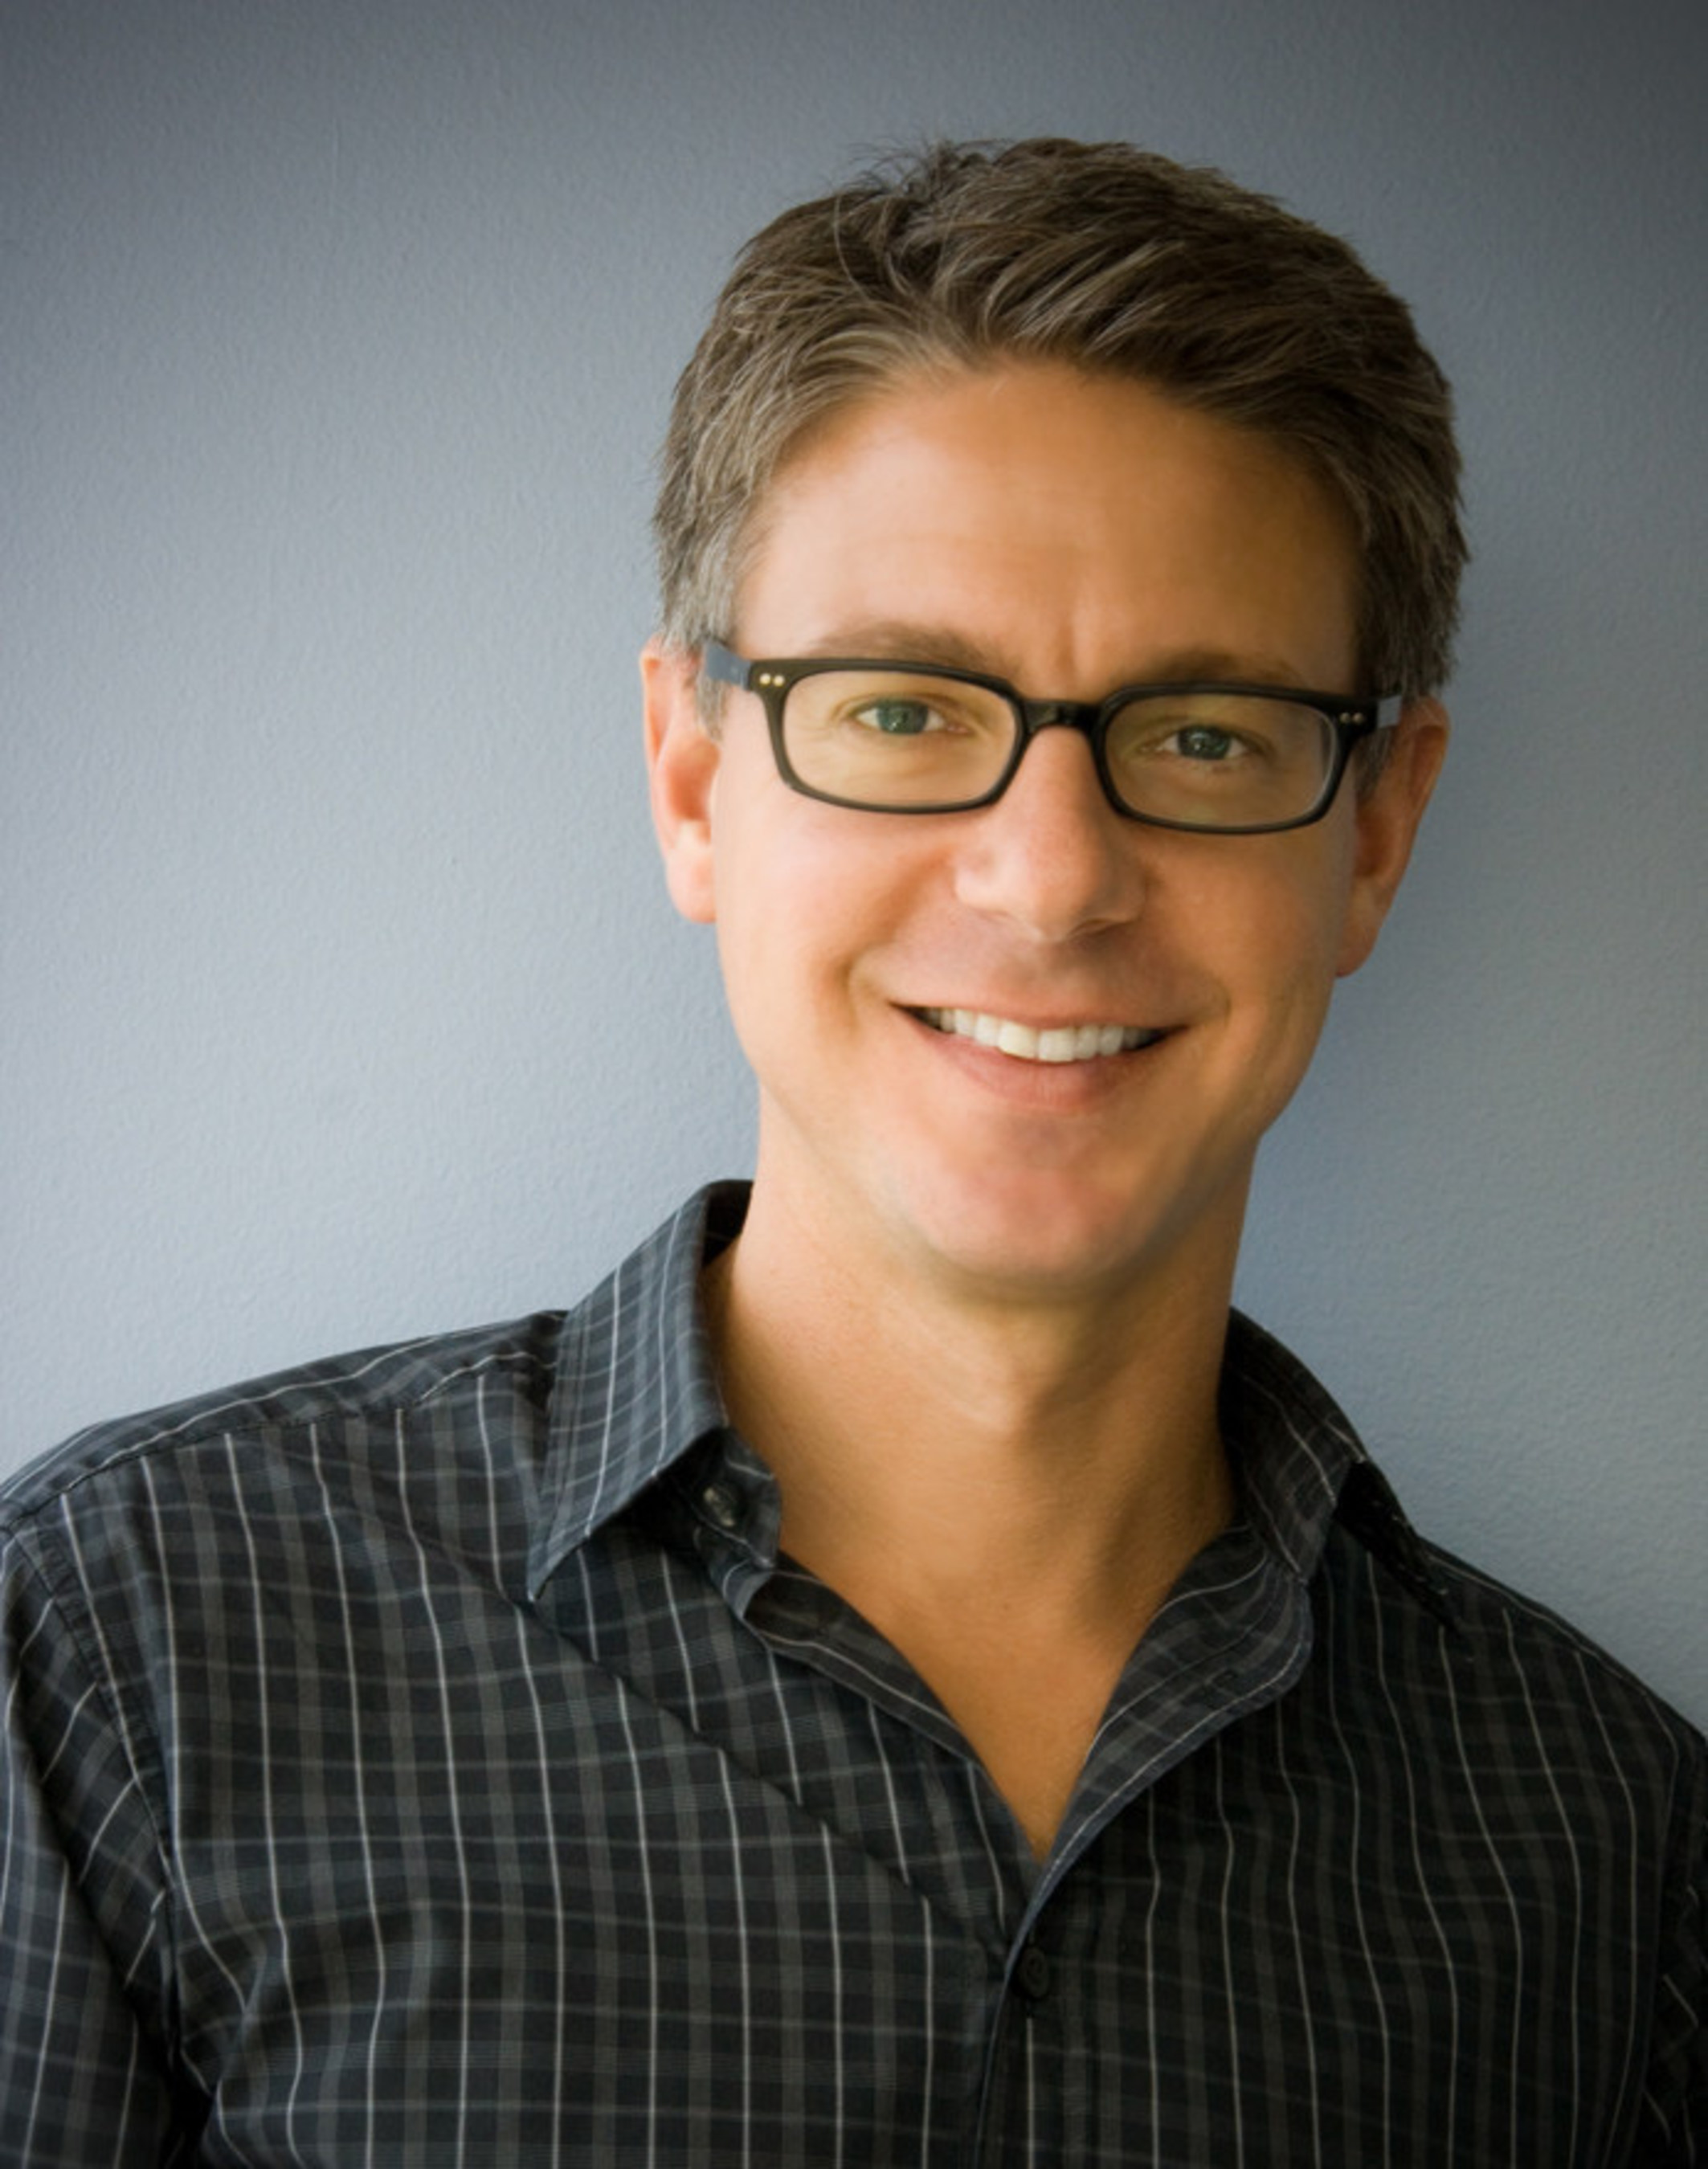 Razorfish hires former Sapient executive, Christian Barnard, to the Central Region leadership team. Barnard joins agency as group vice president of client engagement.